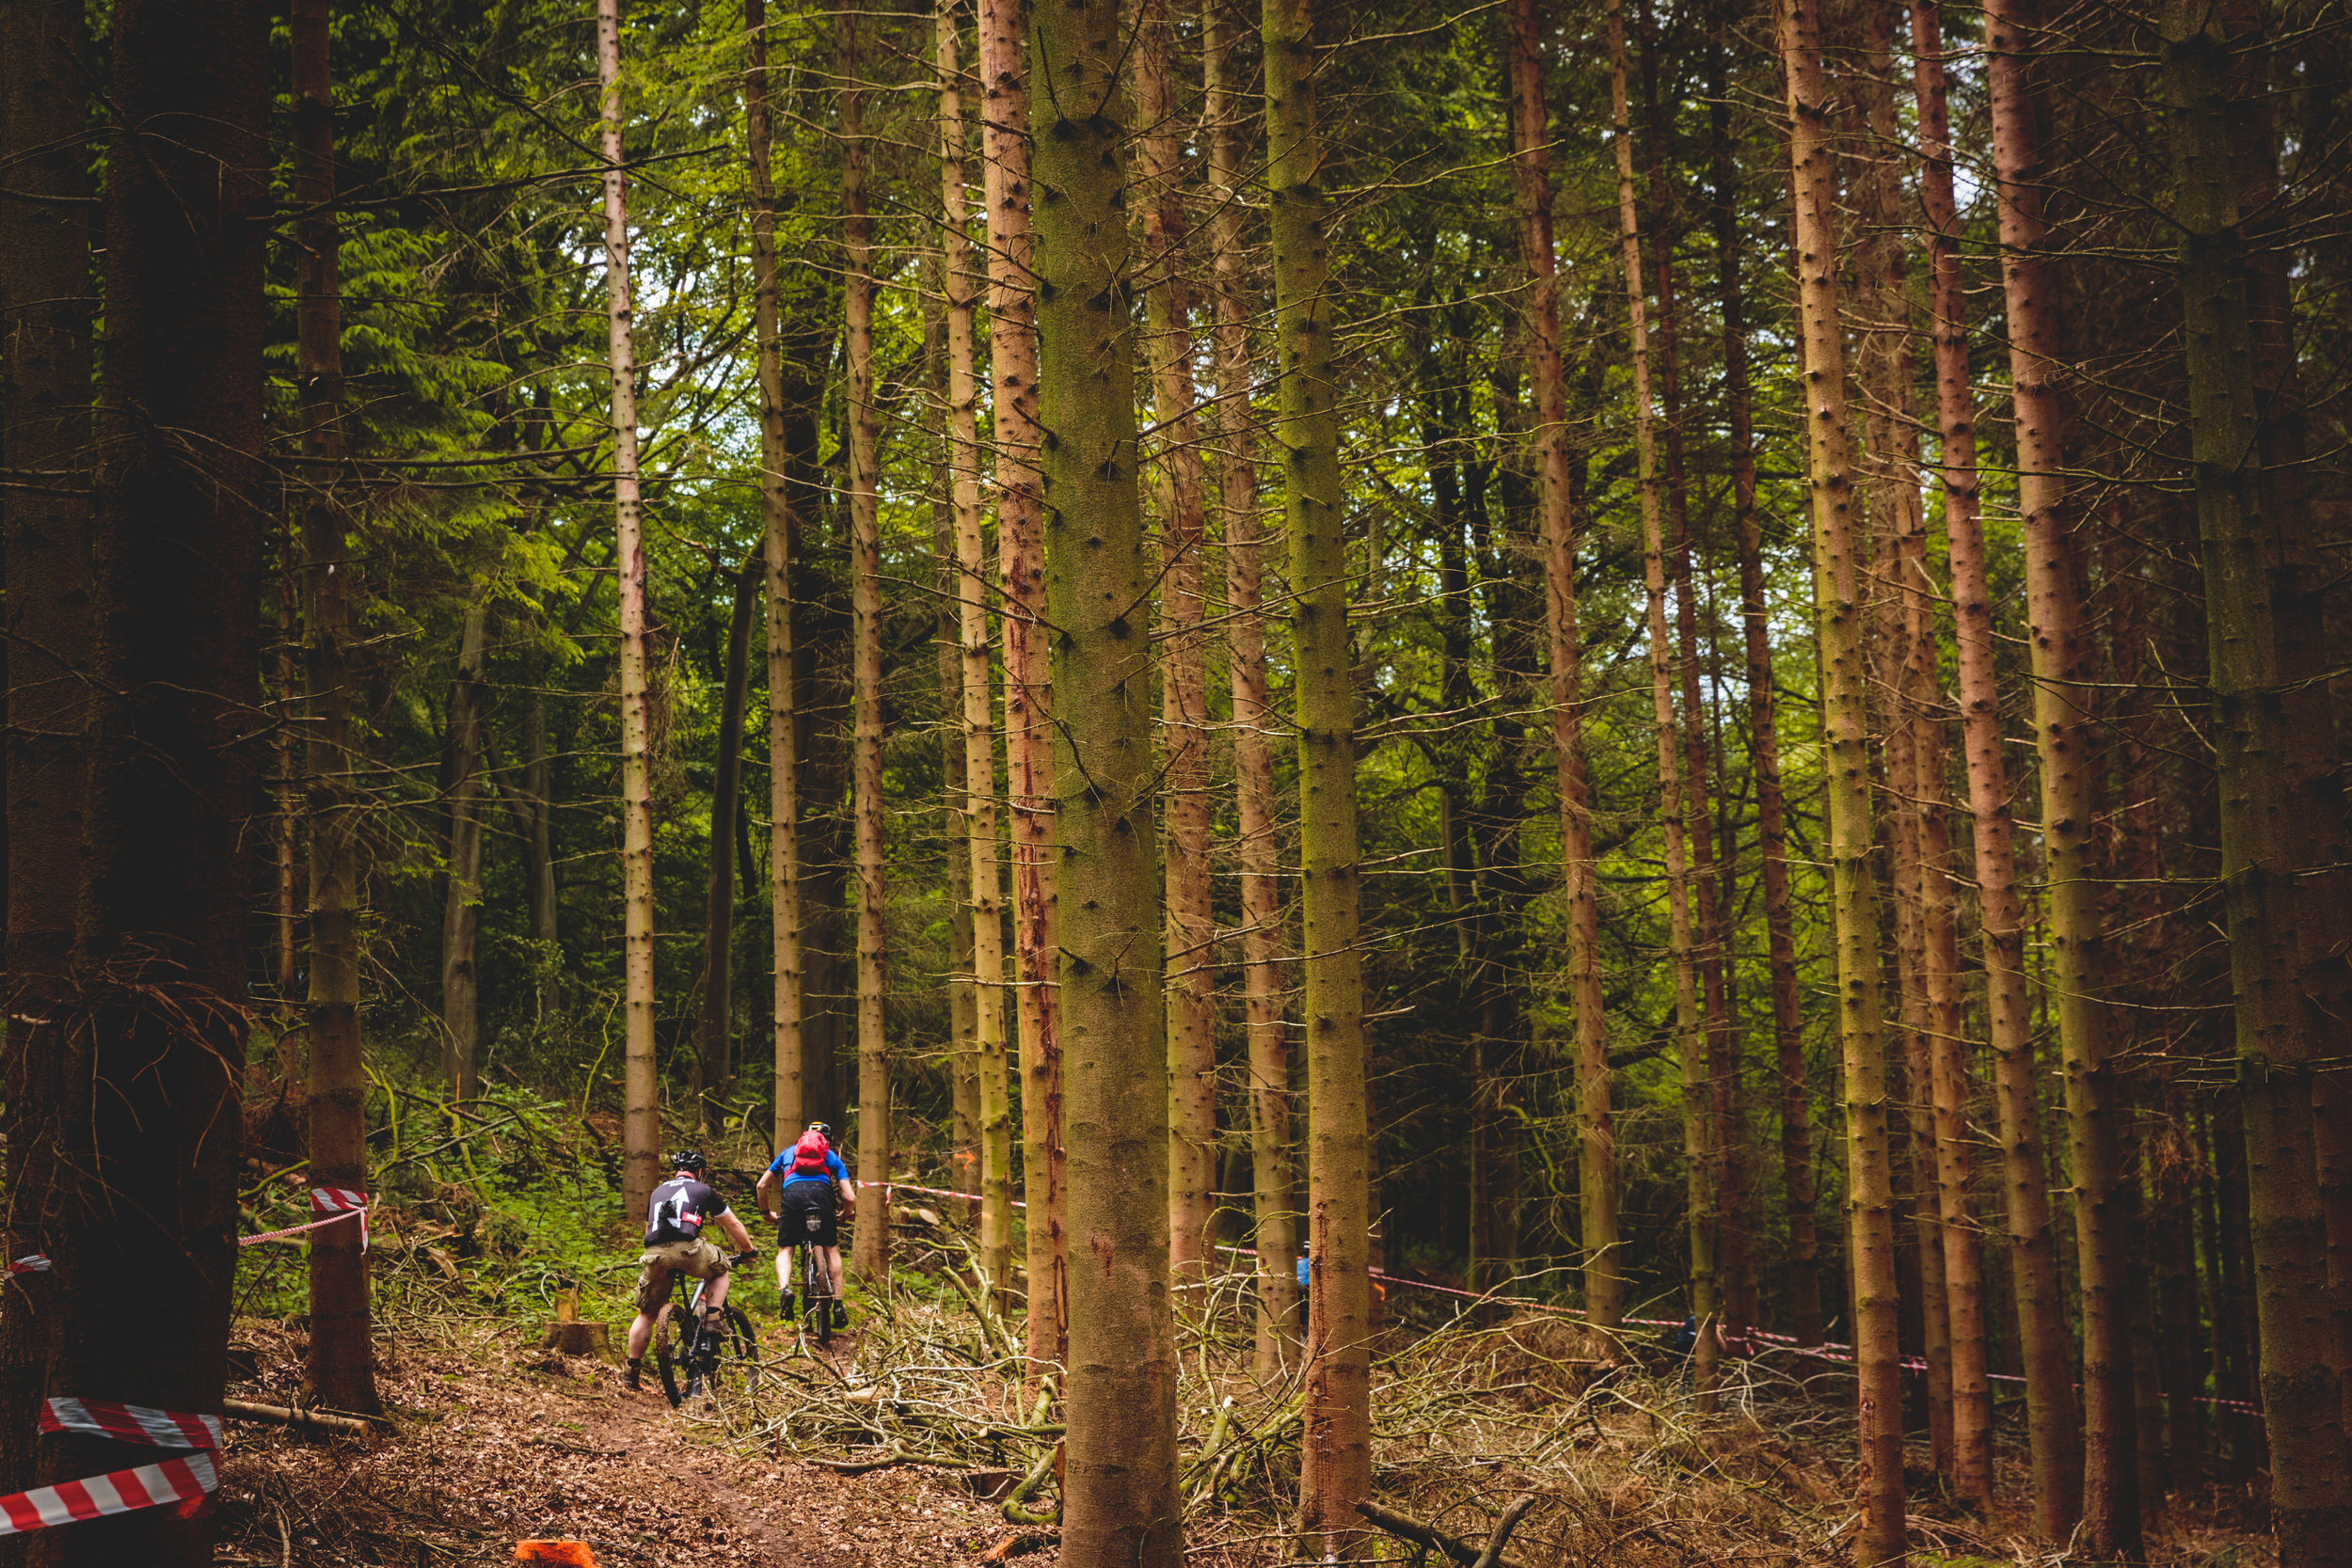 Mountain Bikers Lost in the Woods